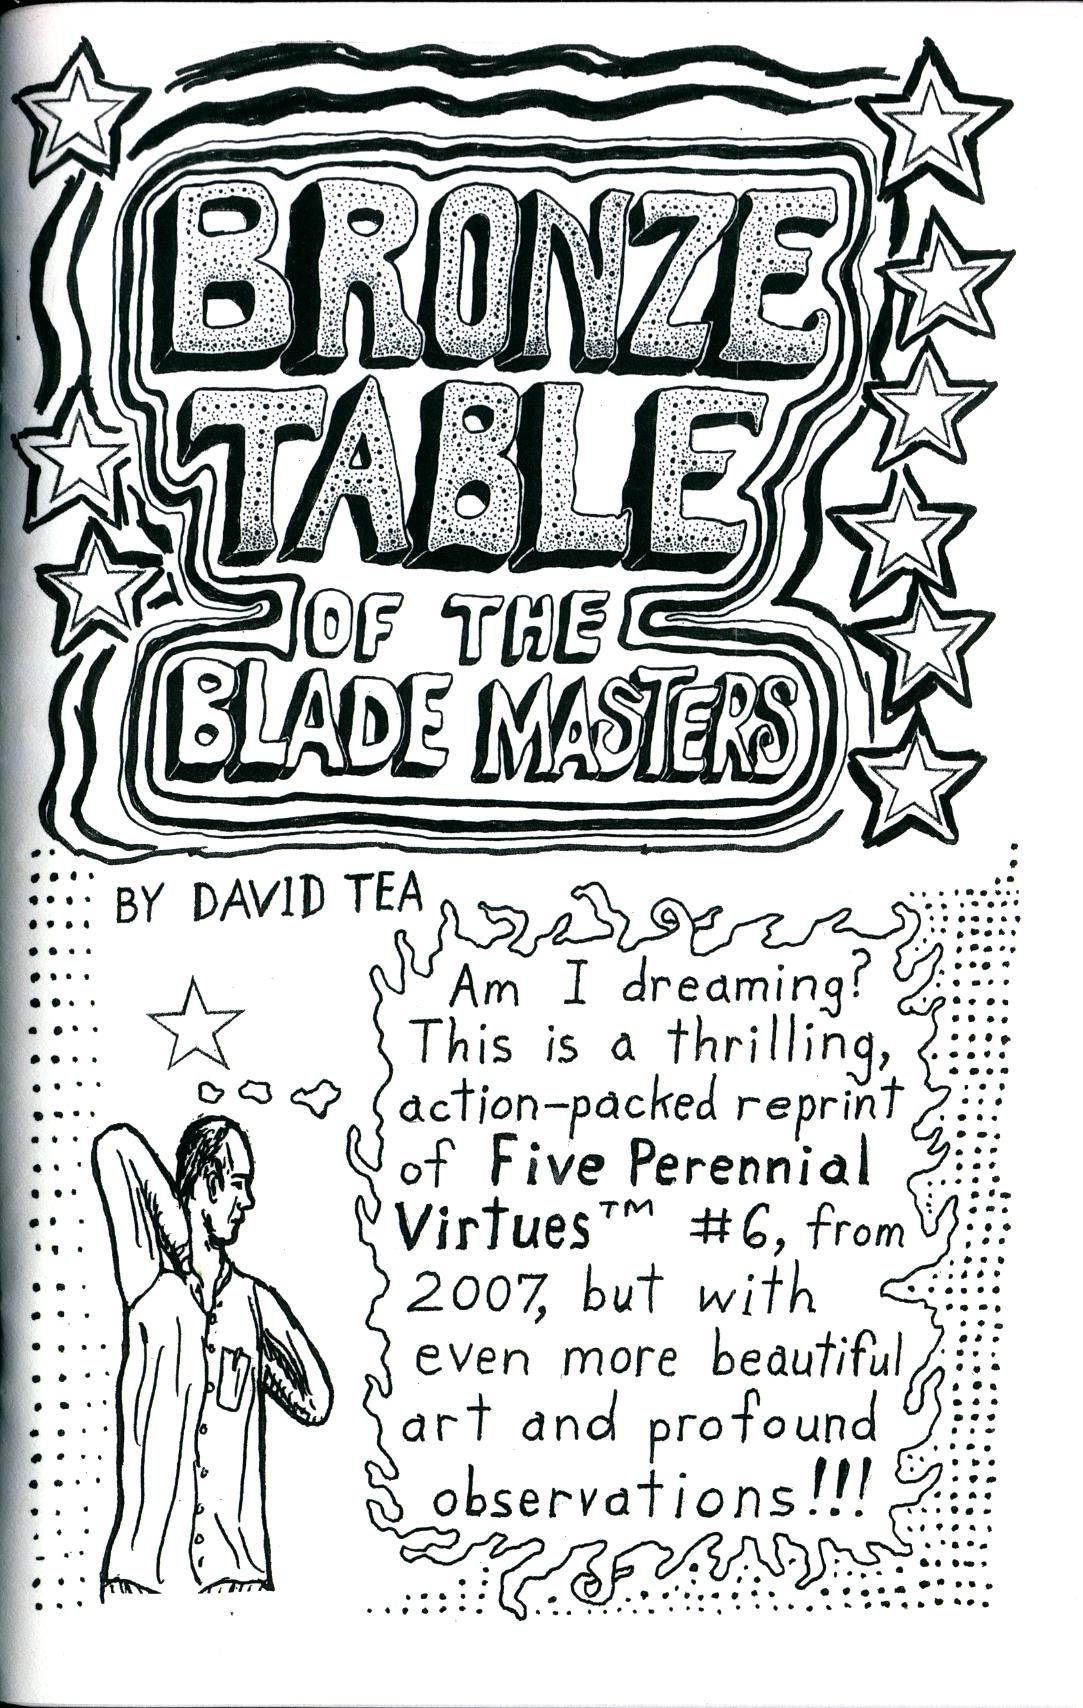 Image of Five Perennial Virtues #6 (Bronze Table of the Blade Masters) by David Tea